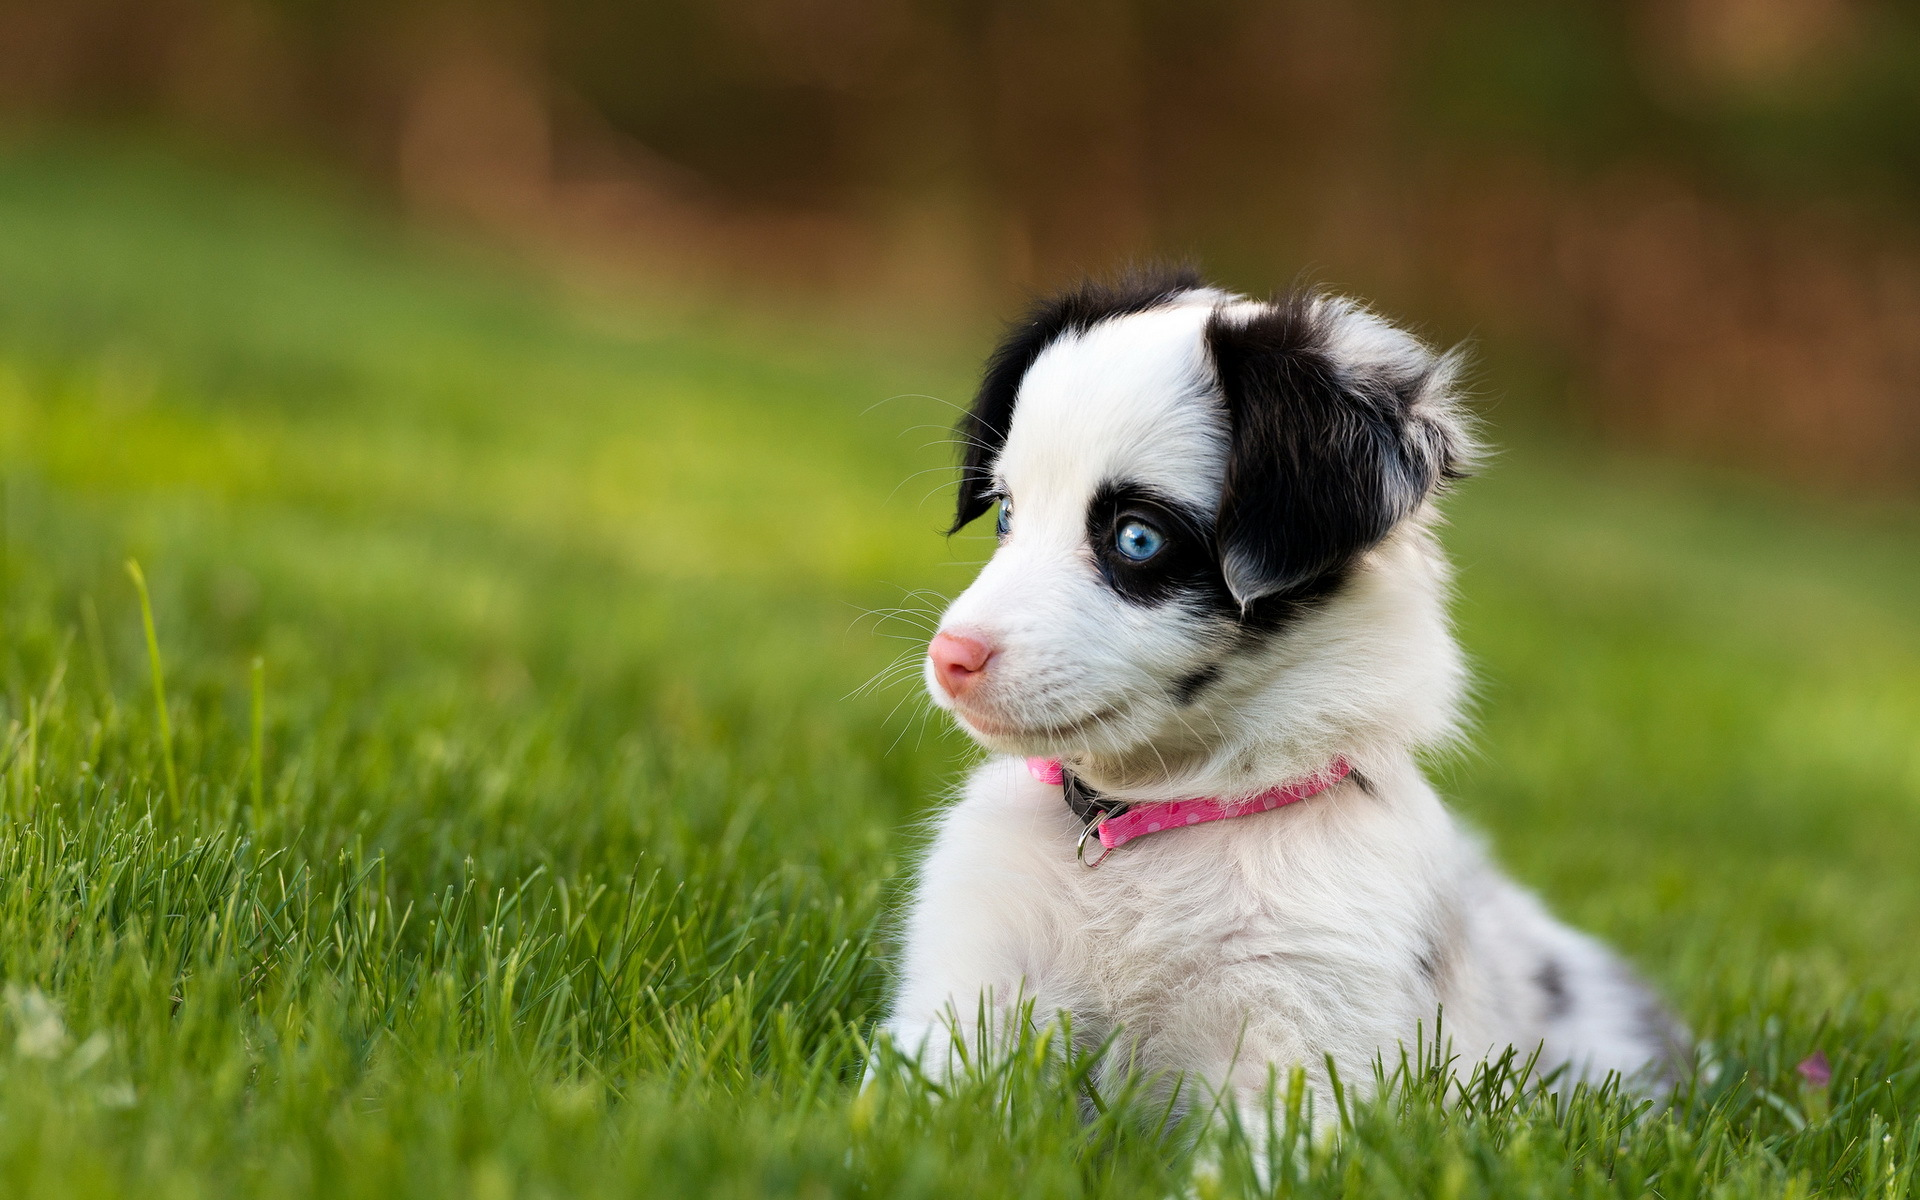 Cute Husky Puppies With Blue Eyes Wallpaper Dog Wallpaper Blue Eyes Hd Desktop Wallpapers 4k Hd